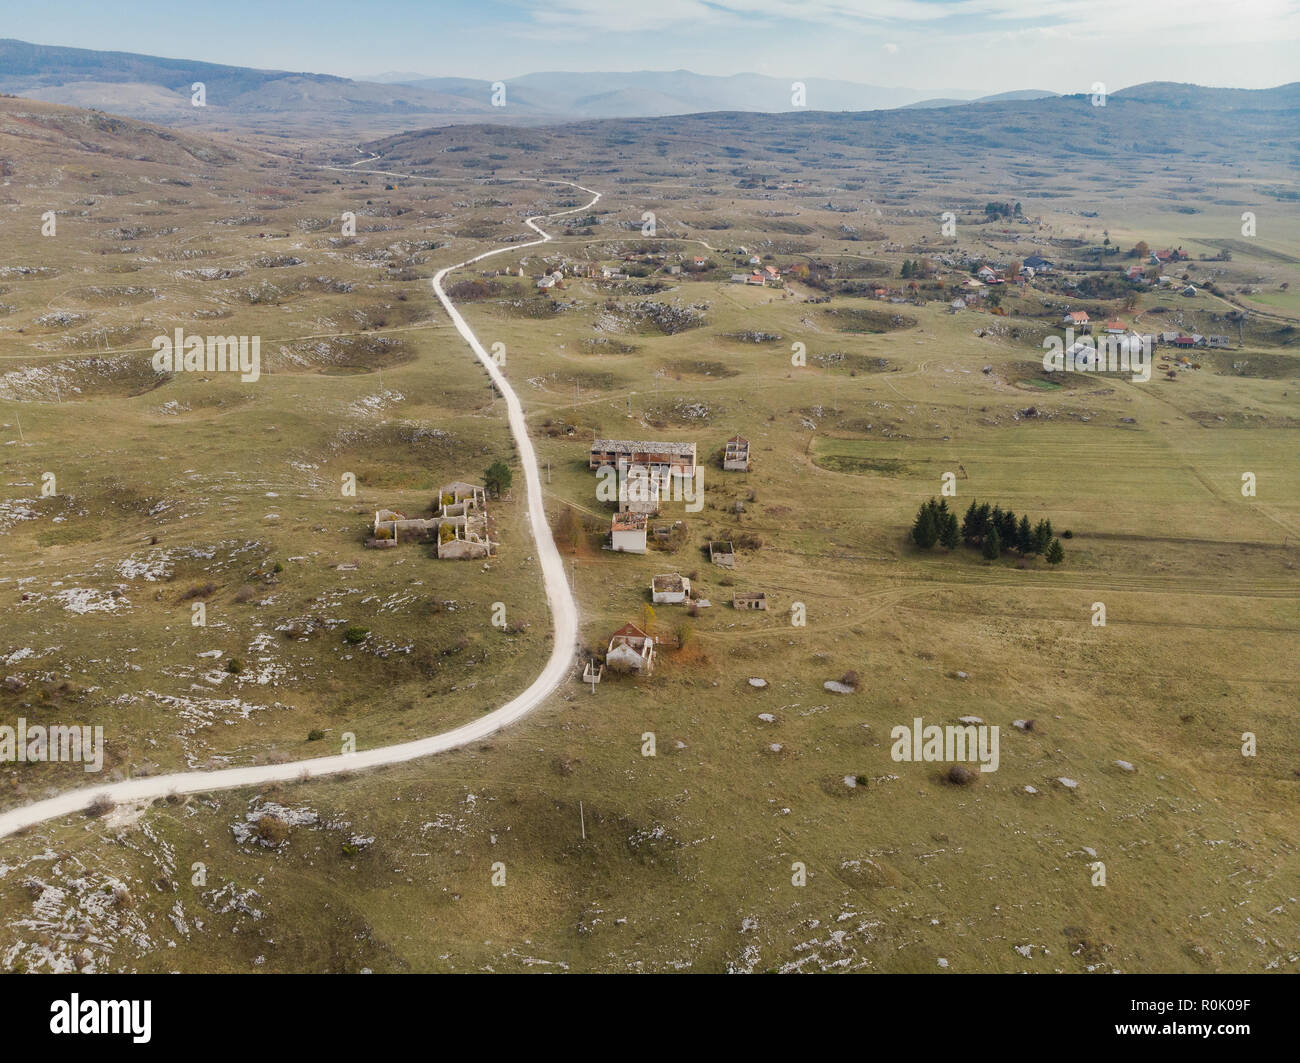 Aerial view over village destroyed by Balkan War,Bosnia. Stock Photo